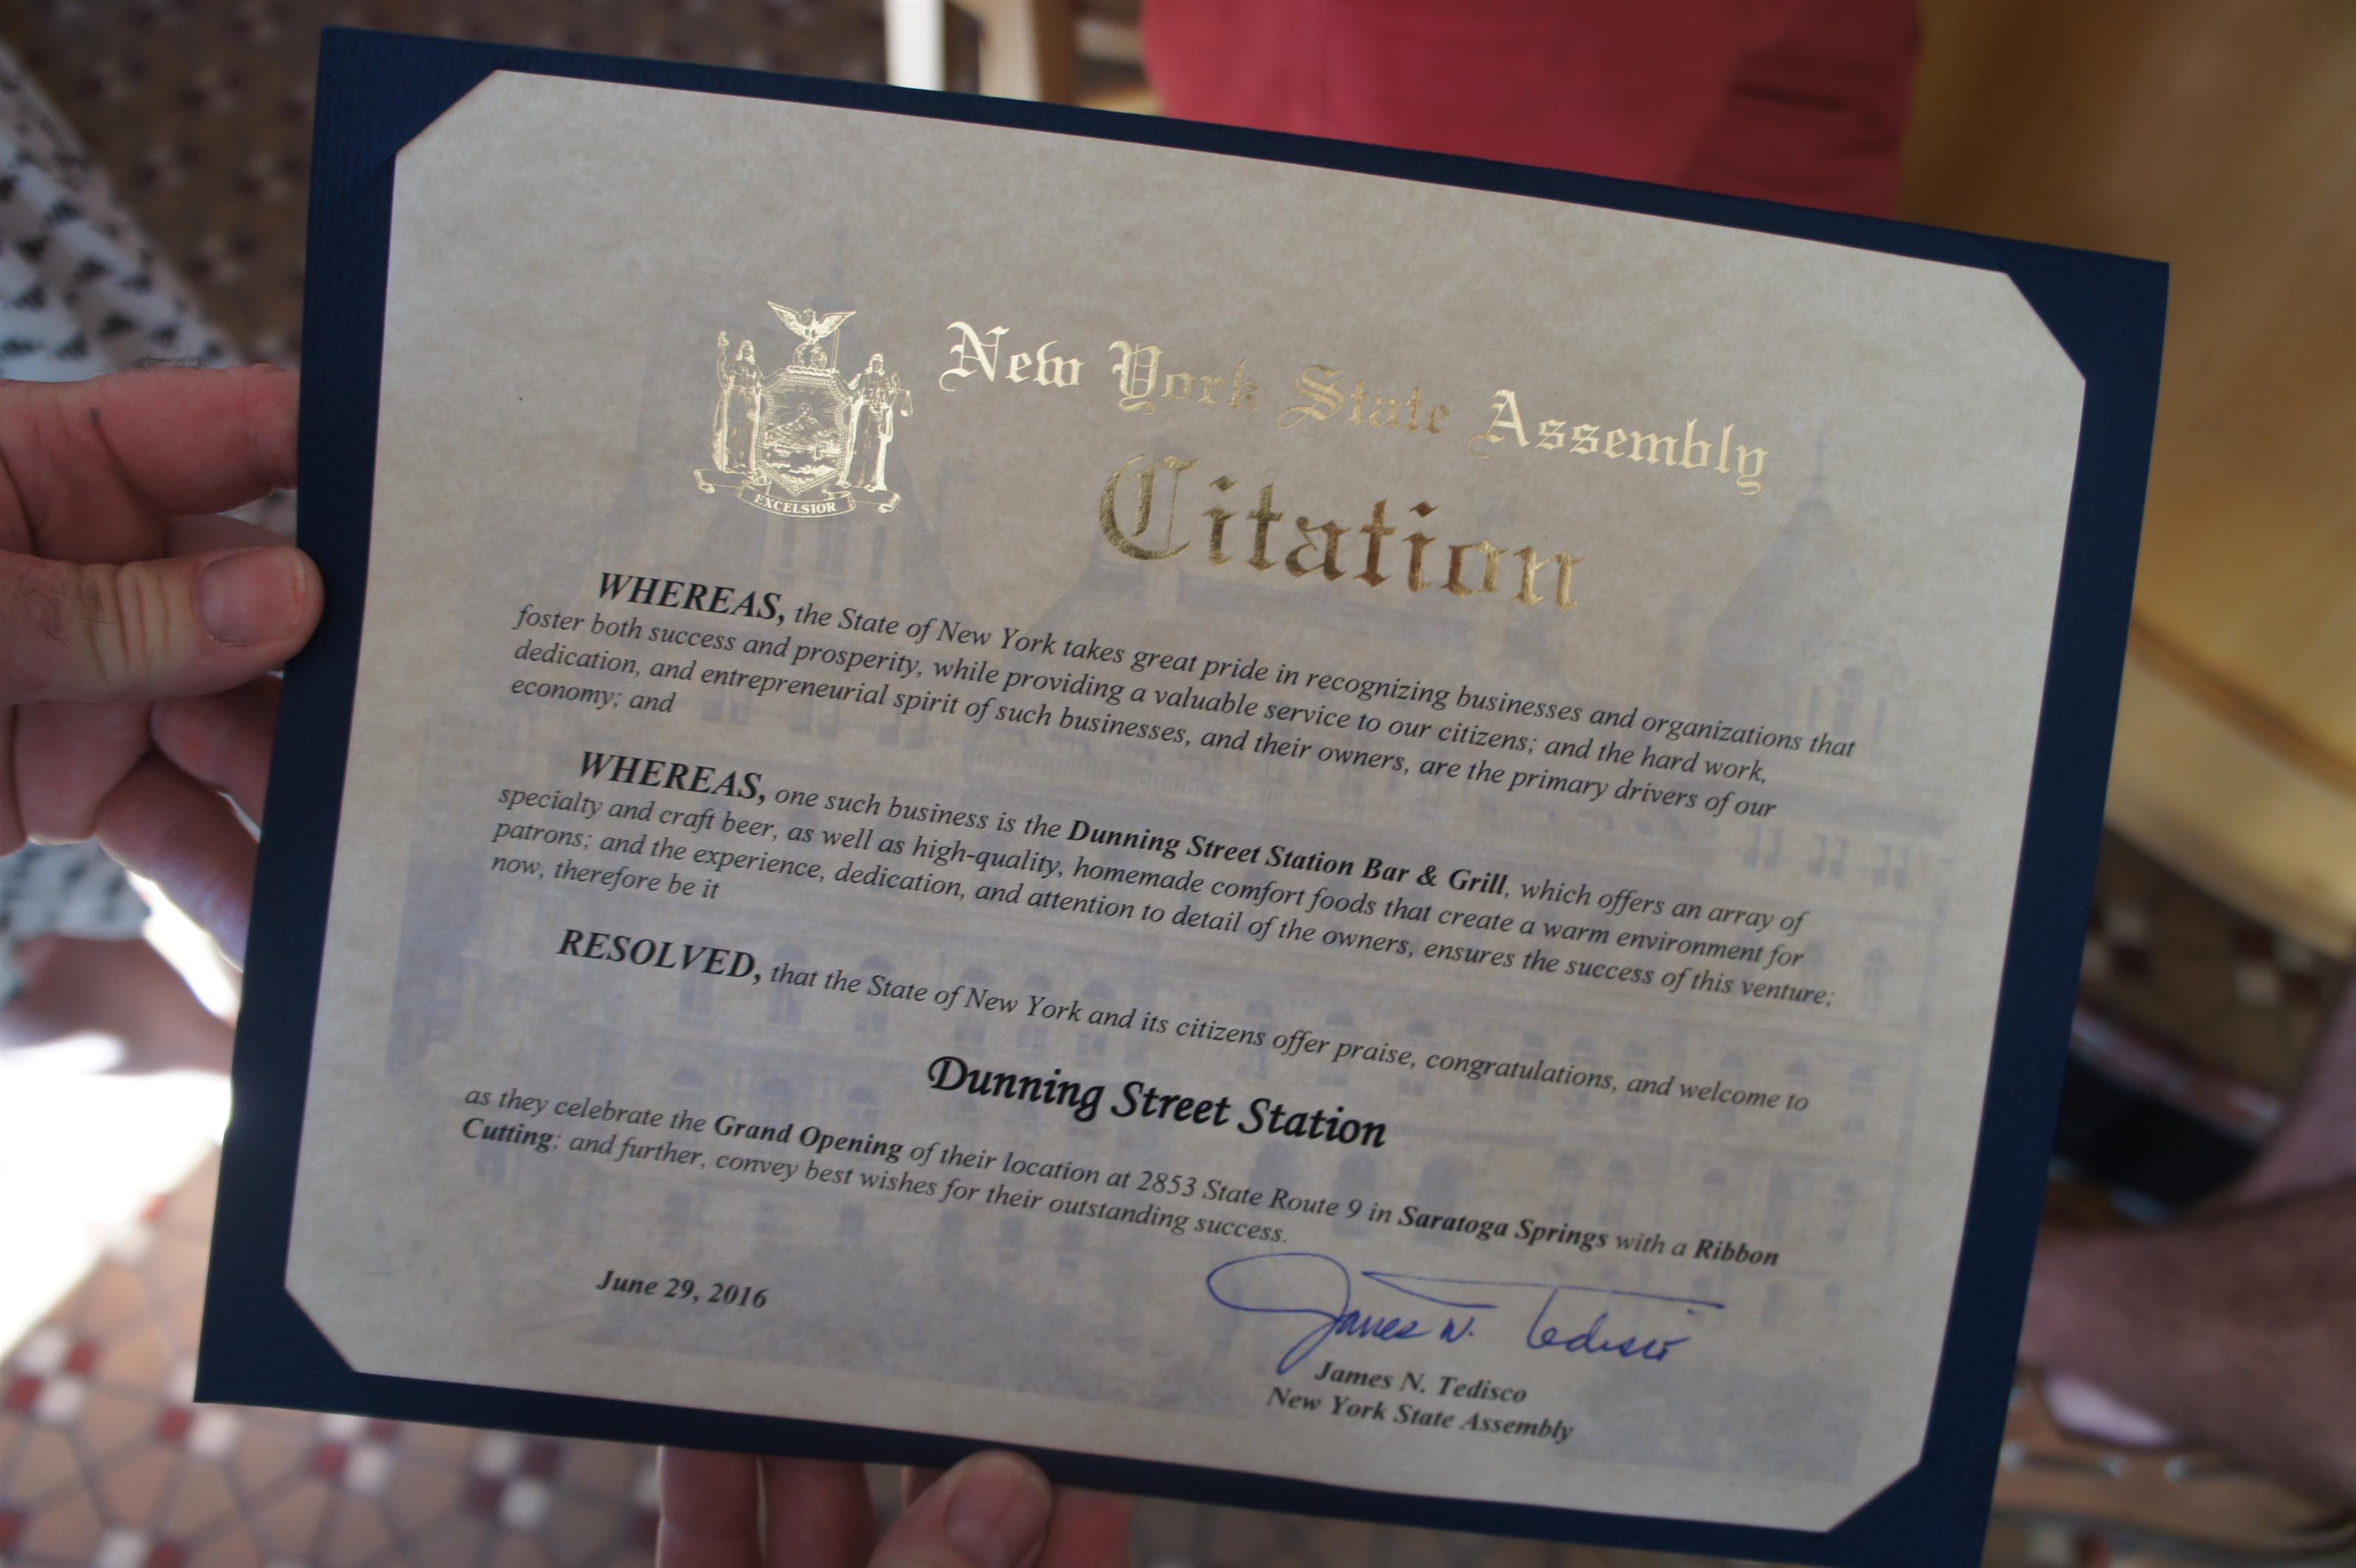 Photo of the New York state Assembly Citation certificate